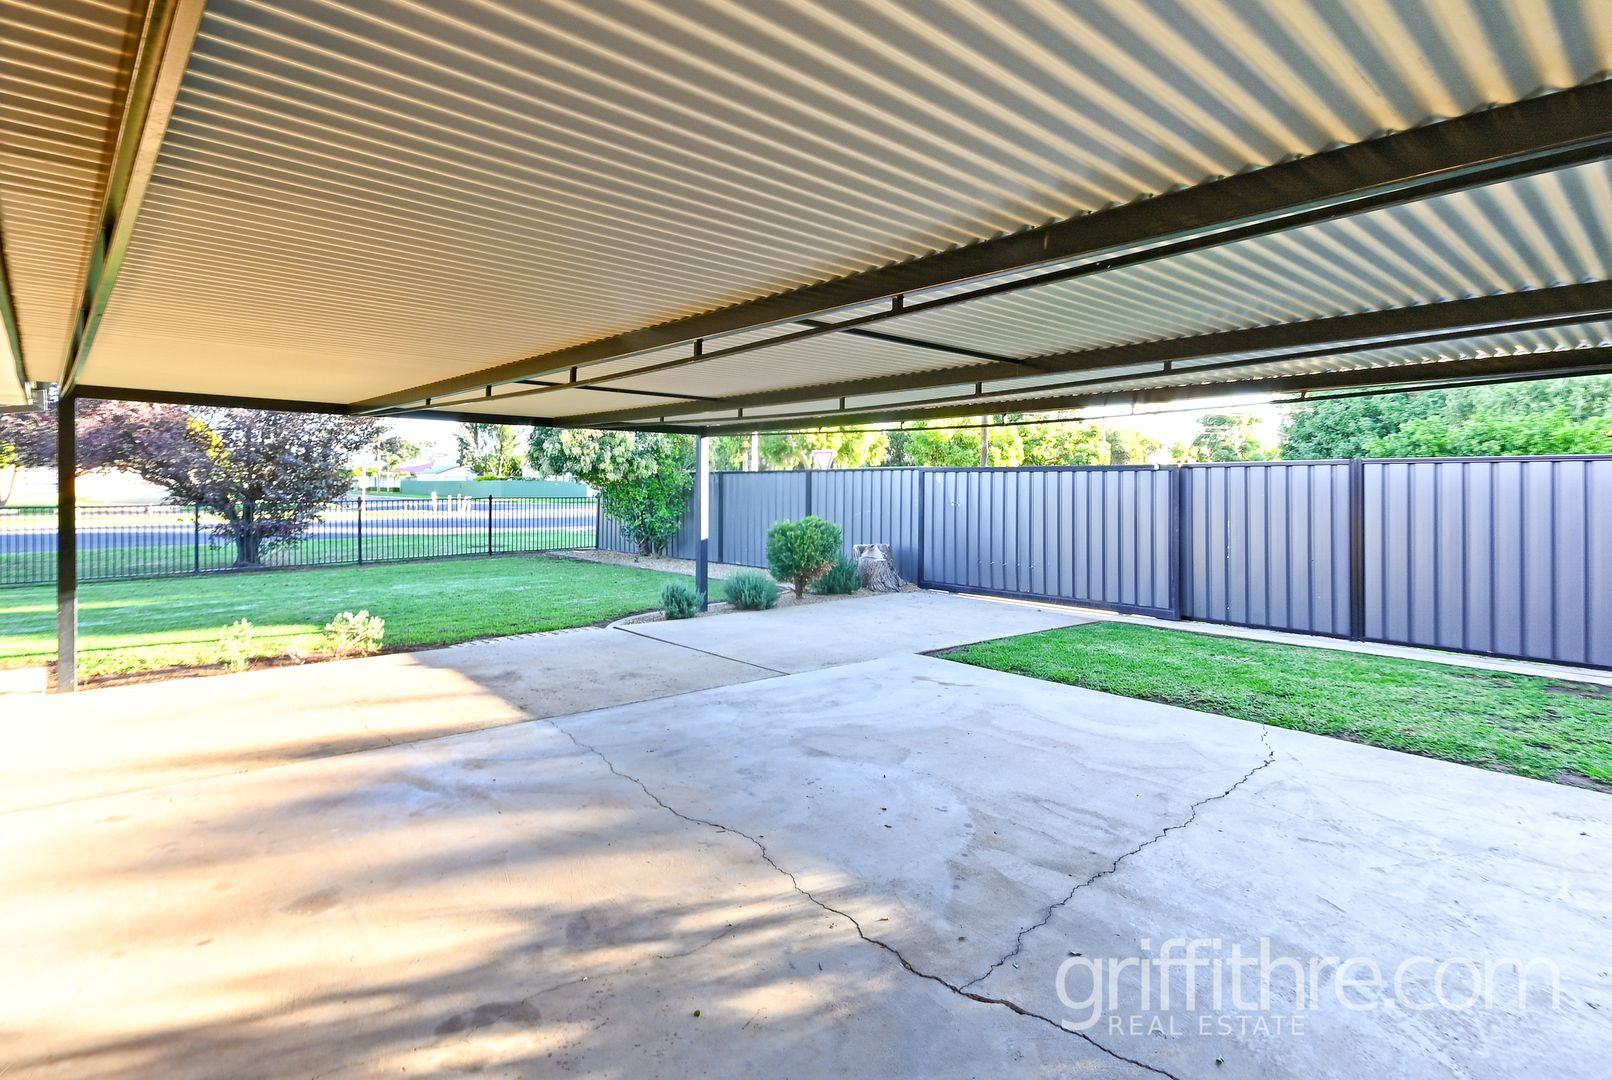 39 Griffin Ave, Griffith NSW 2680, Image 2